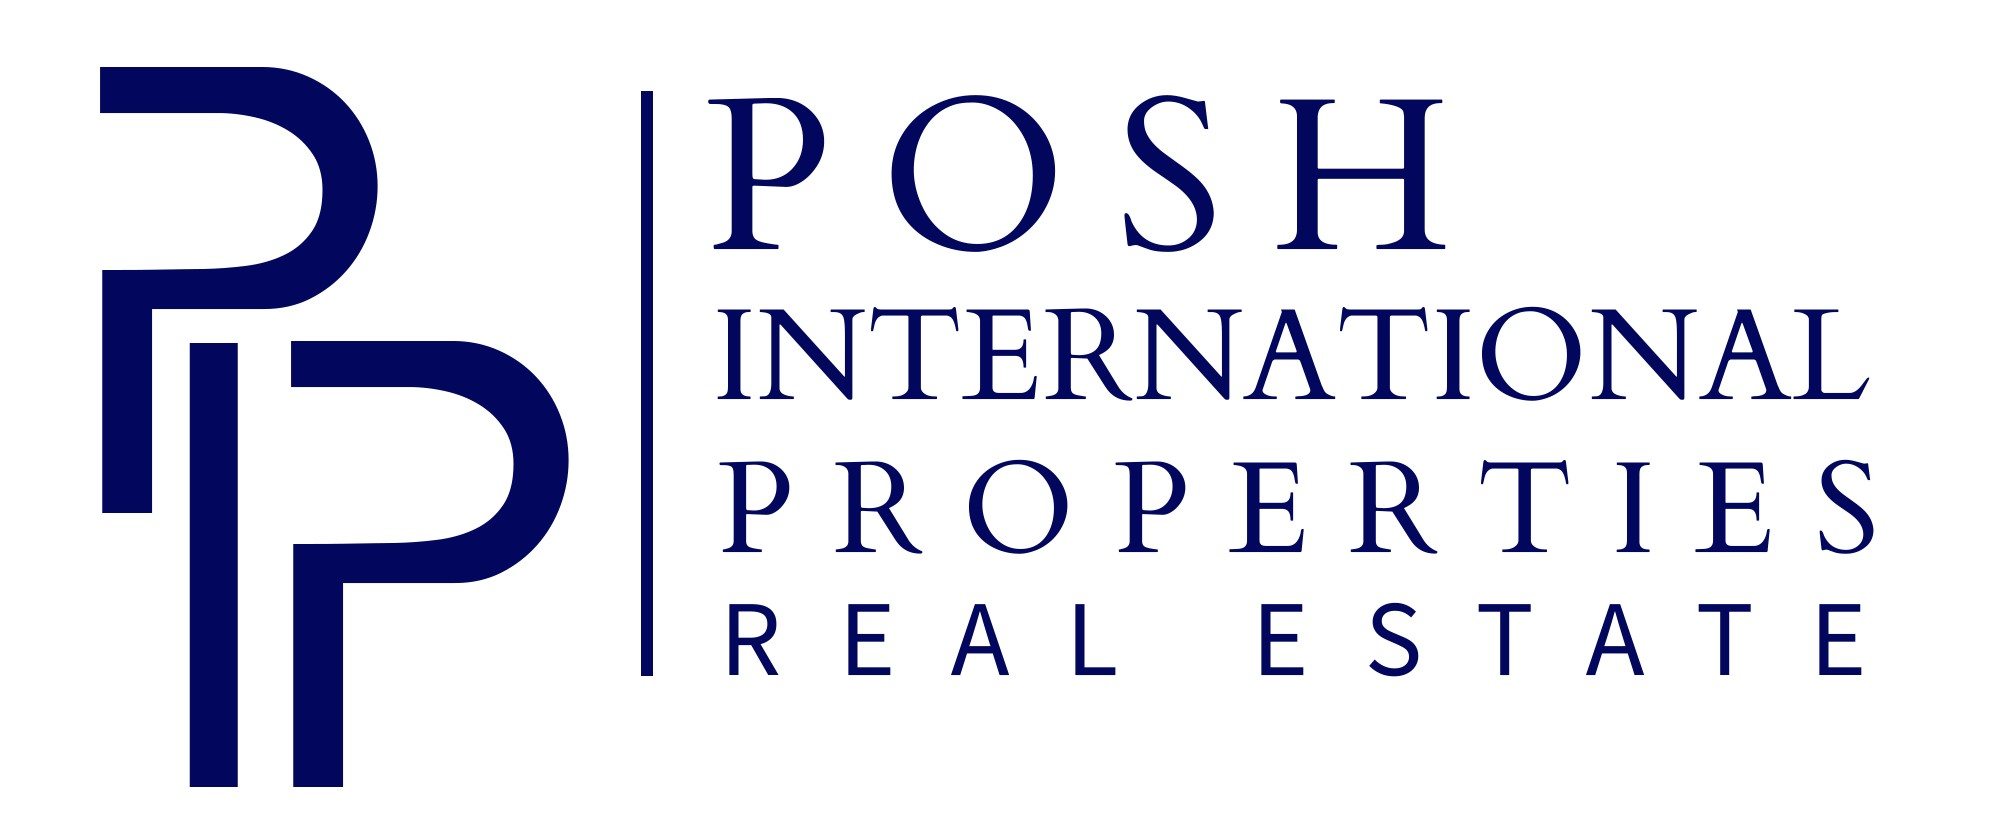 Ferienhäuser Florida privat mieten - Posh International Properties - Immobilien Florida, Naples, Bonita Springs, Bonita Beach, Estero, Marco Island, Fort Myers Beach, Cape Coral, Fort Myers, Sanibel Island, Deutscher Immobilienmakler Florida, Makler, Hausmakler, Luxusmakler, Wohnungsmakler, Villenmakler, Luxusimmobilienmakler - Immobilien Florida USA